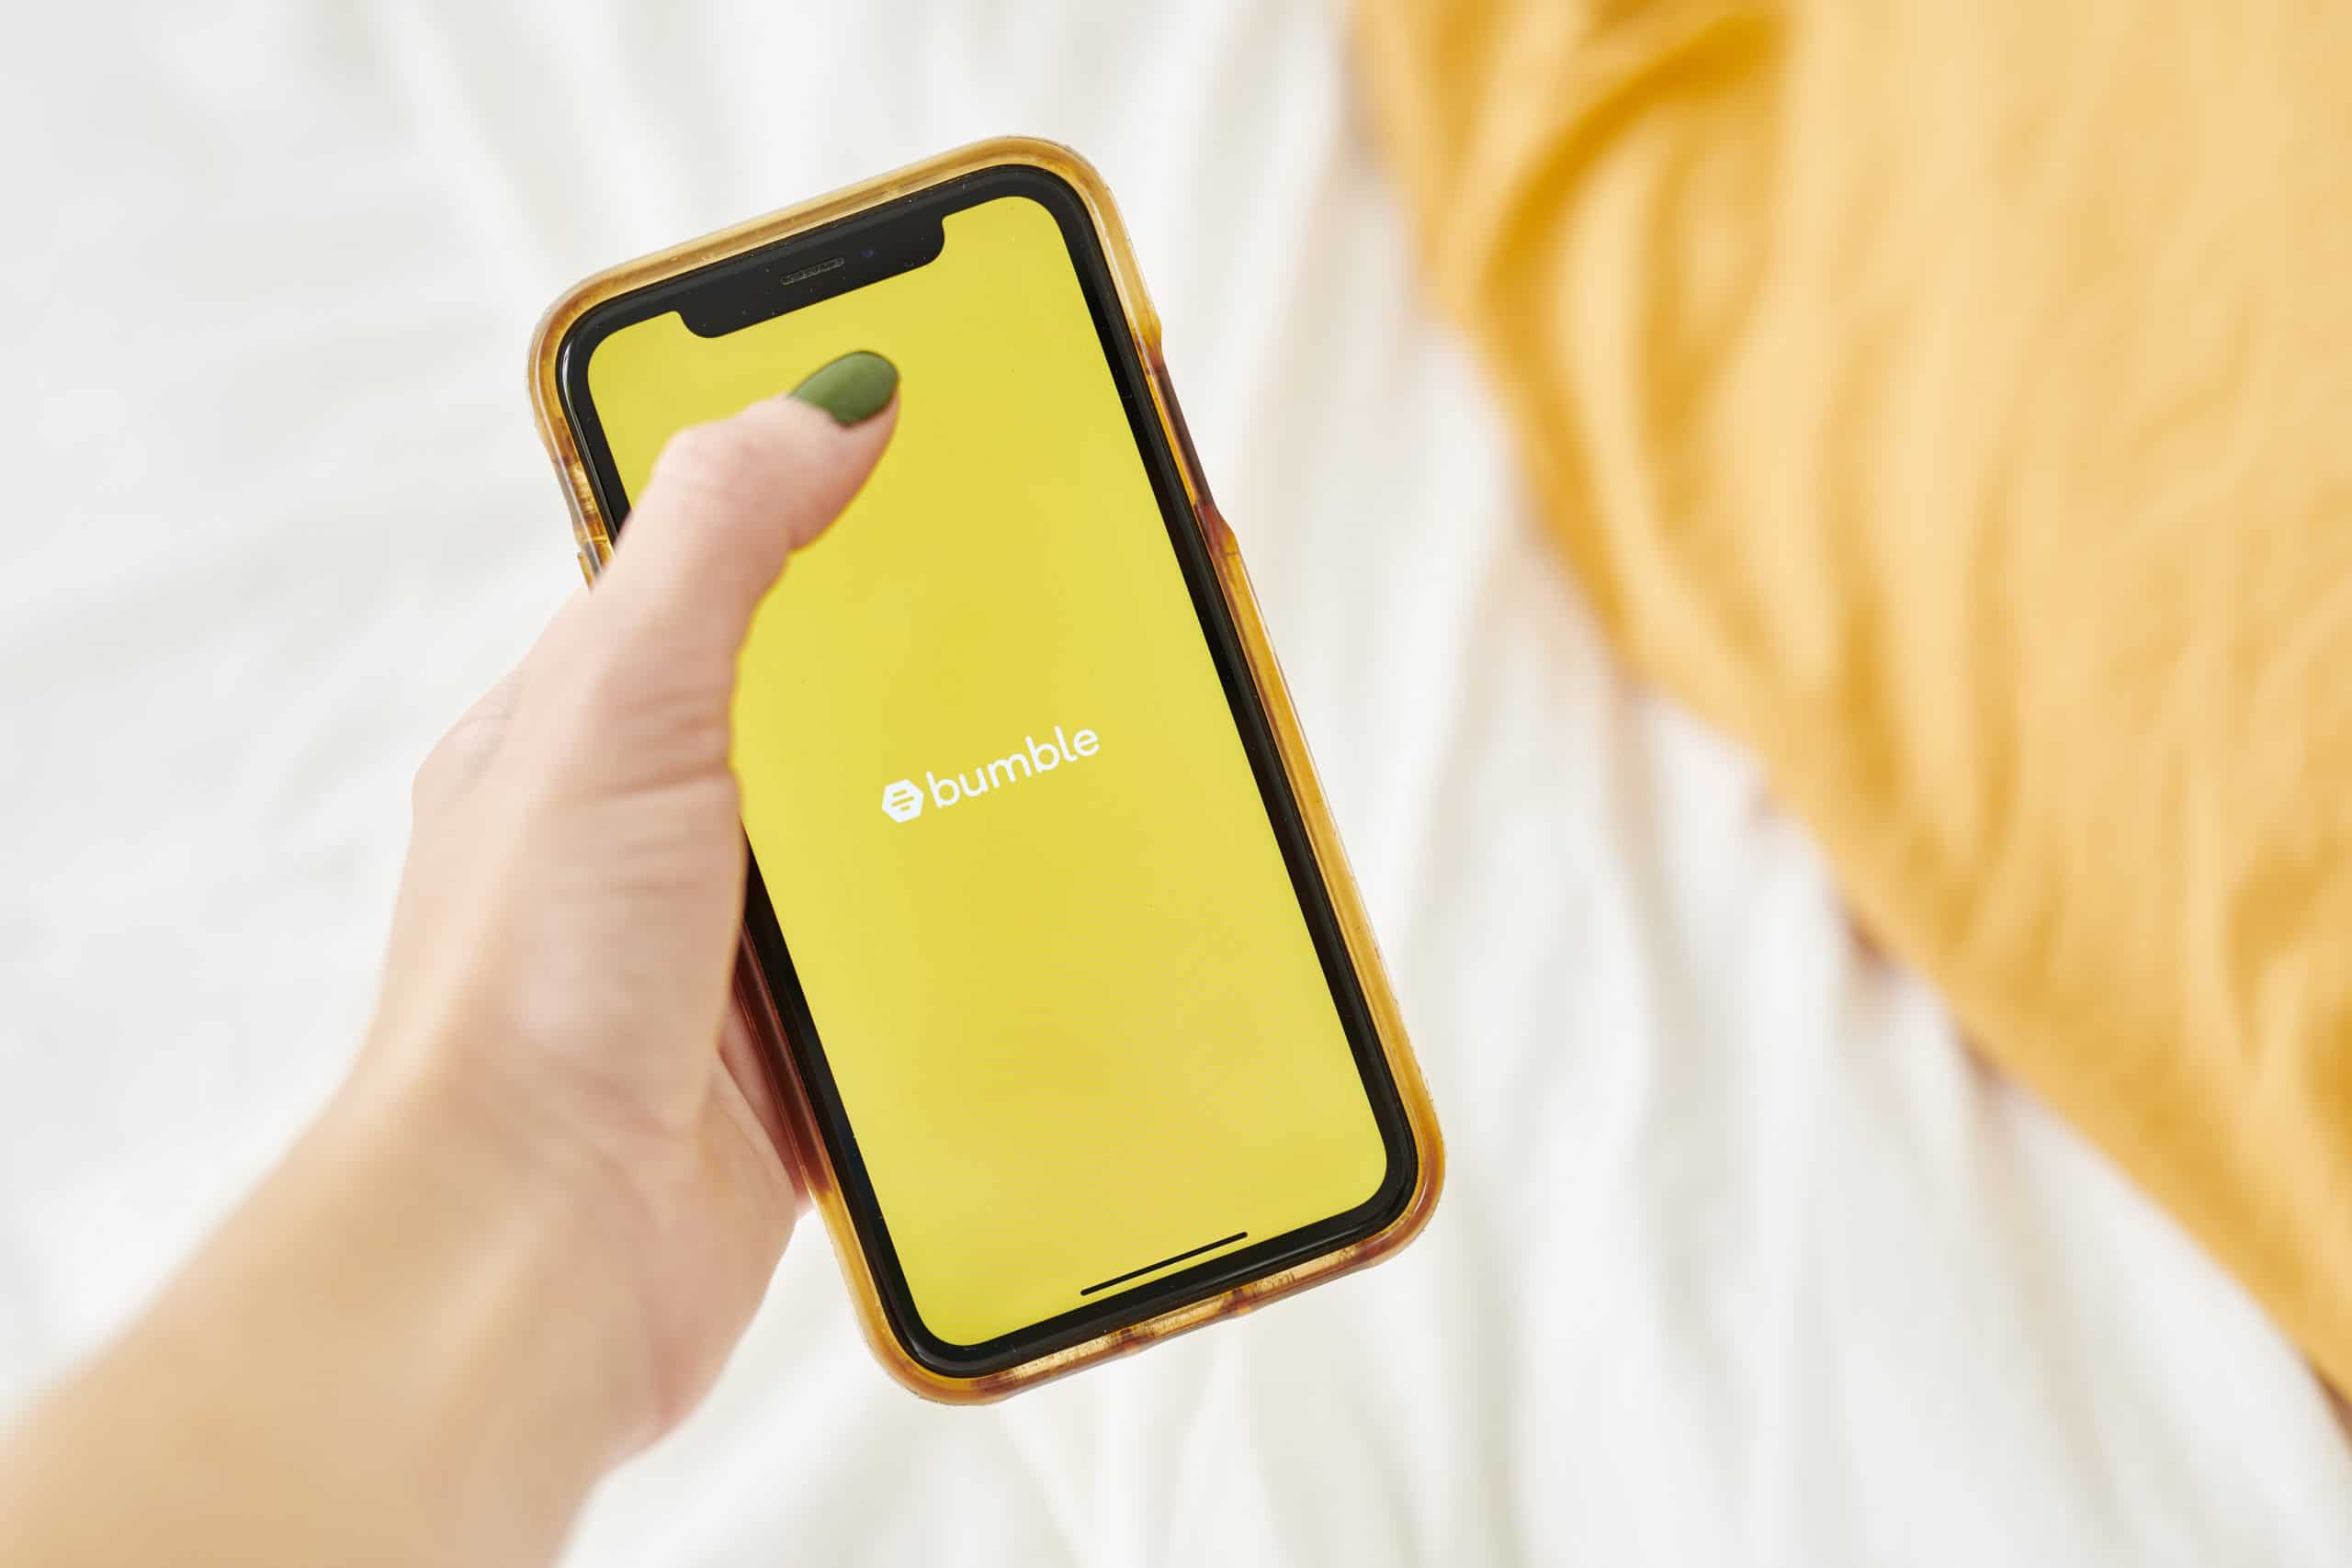 Blackstone Seeks Payout From Bumble Loan Amid Online Dating Boom